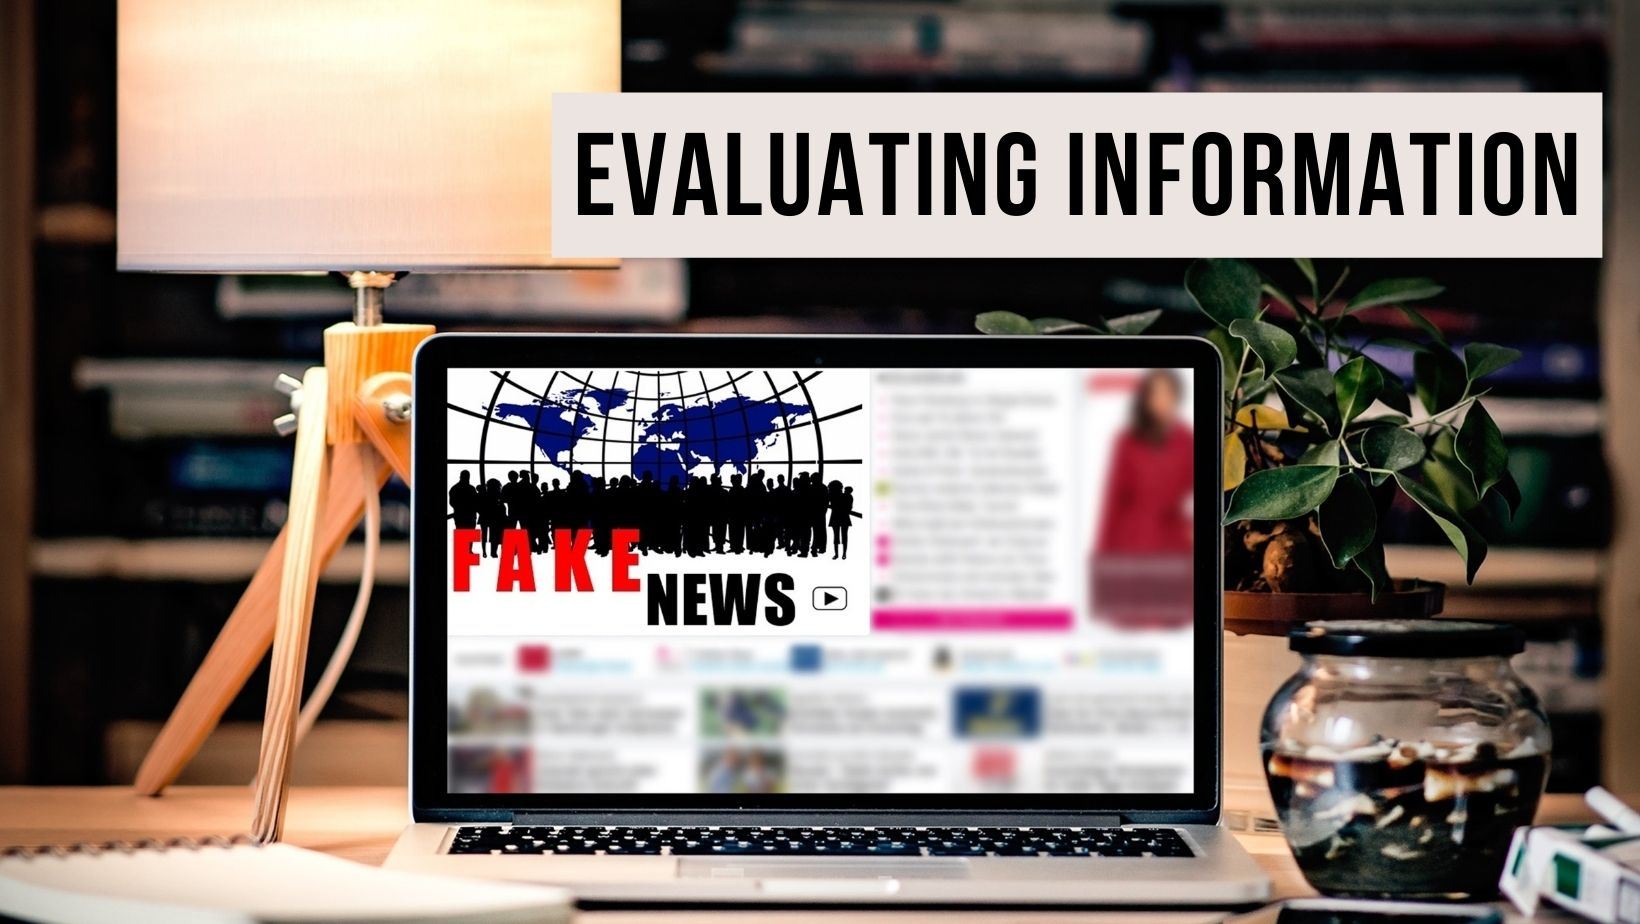 A picture of a laptop showing fake news to represent evaluating information